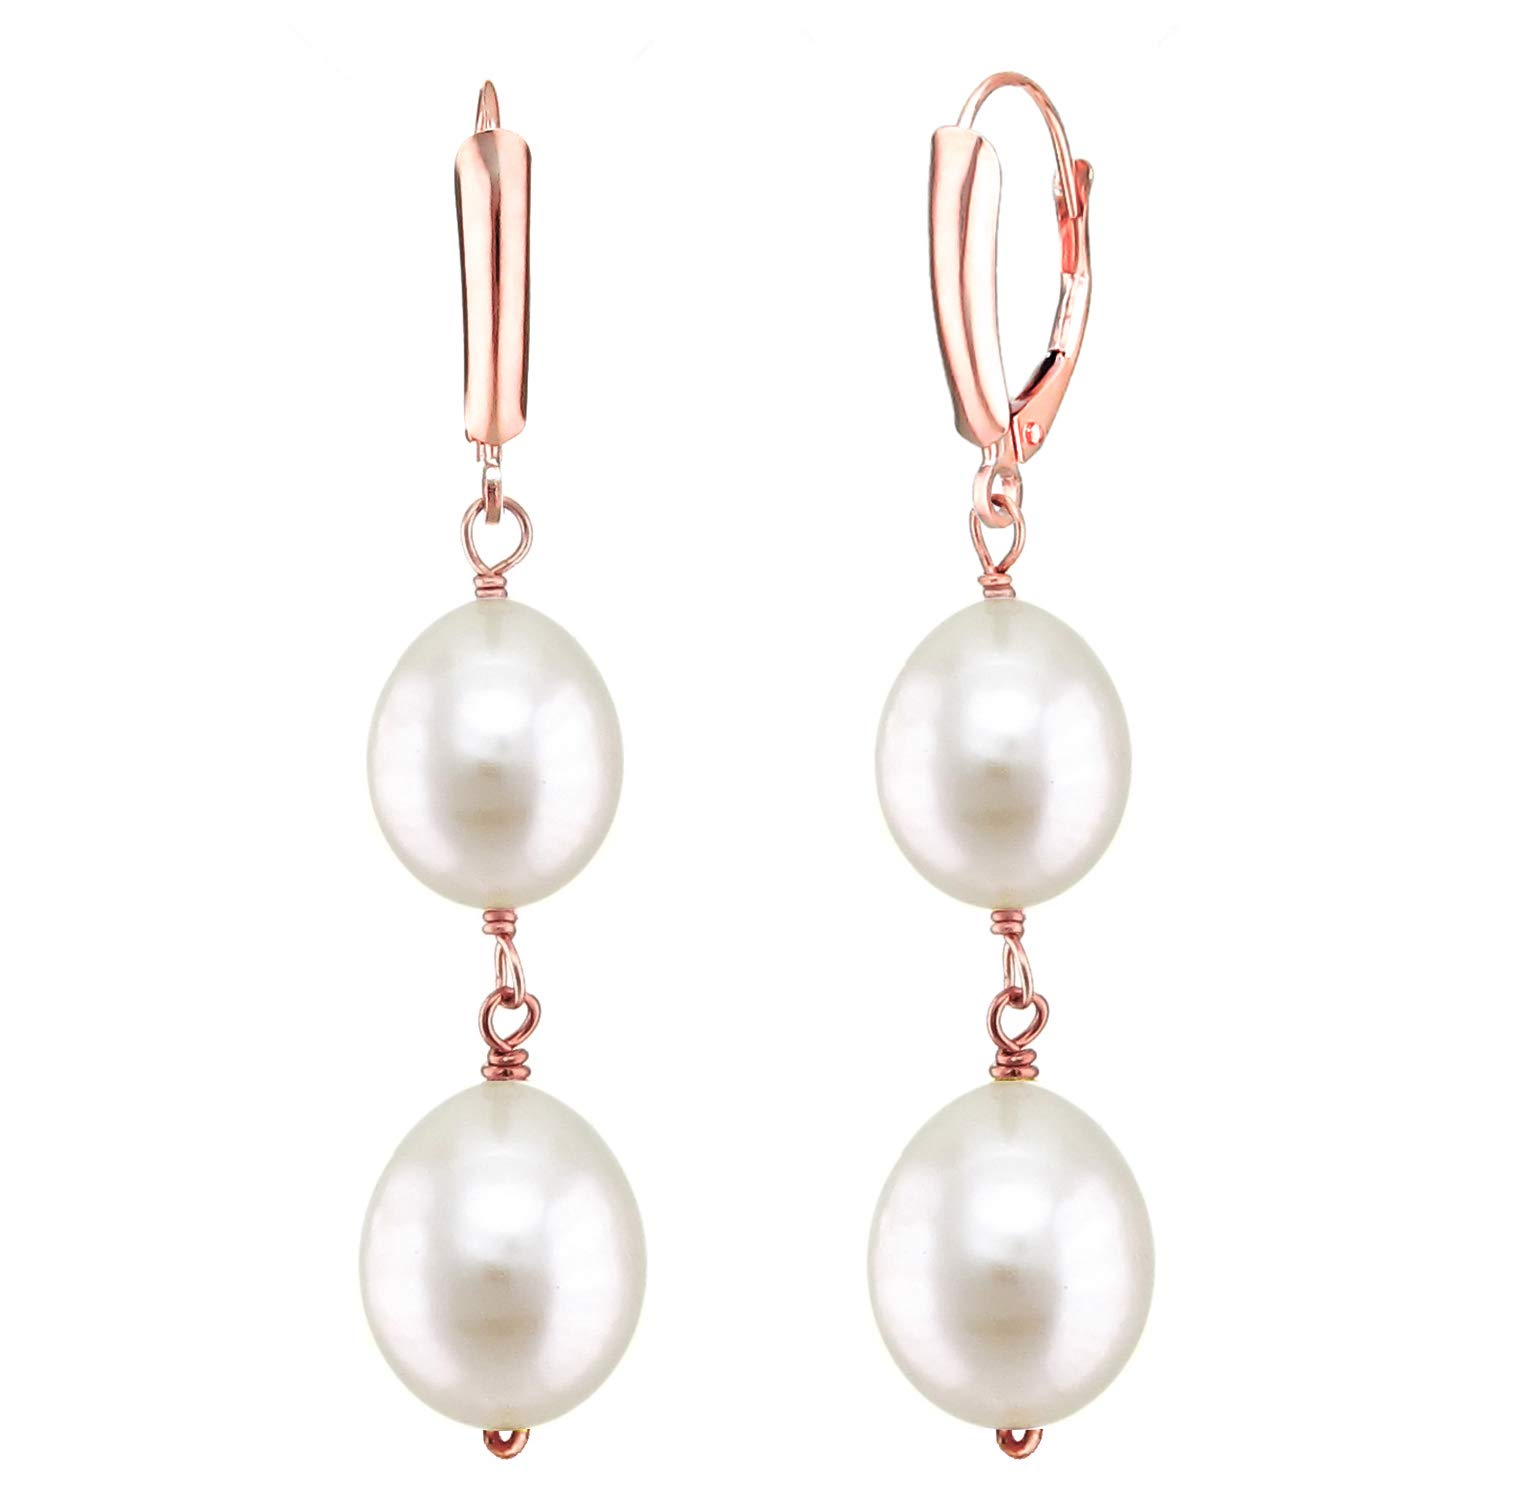 Long-shape Freshwater Cultured White Pearl 8.5-9mm and 10-10.5mm Leverback Dangle Earrings in 14k Rose Gold